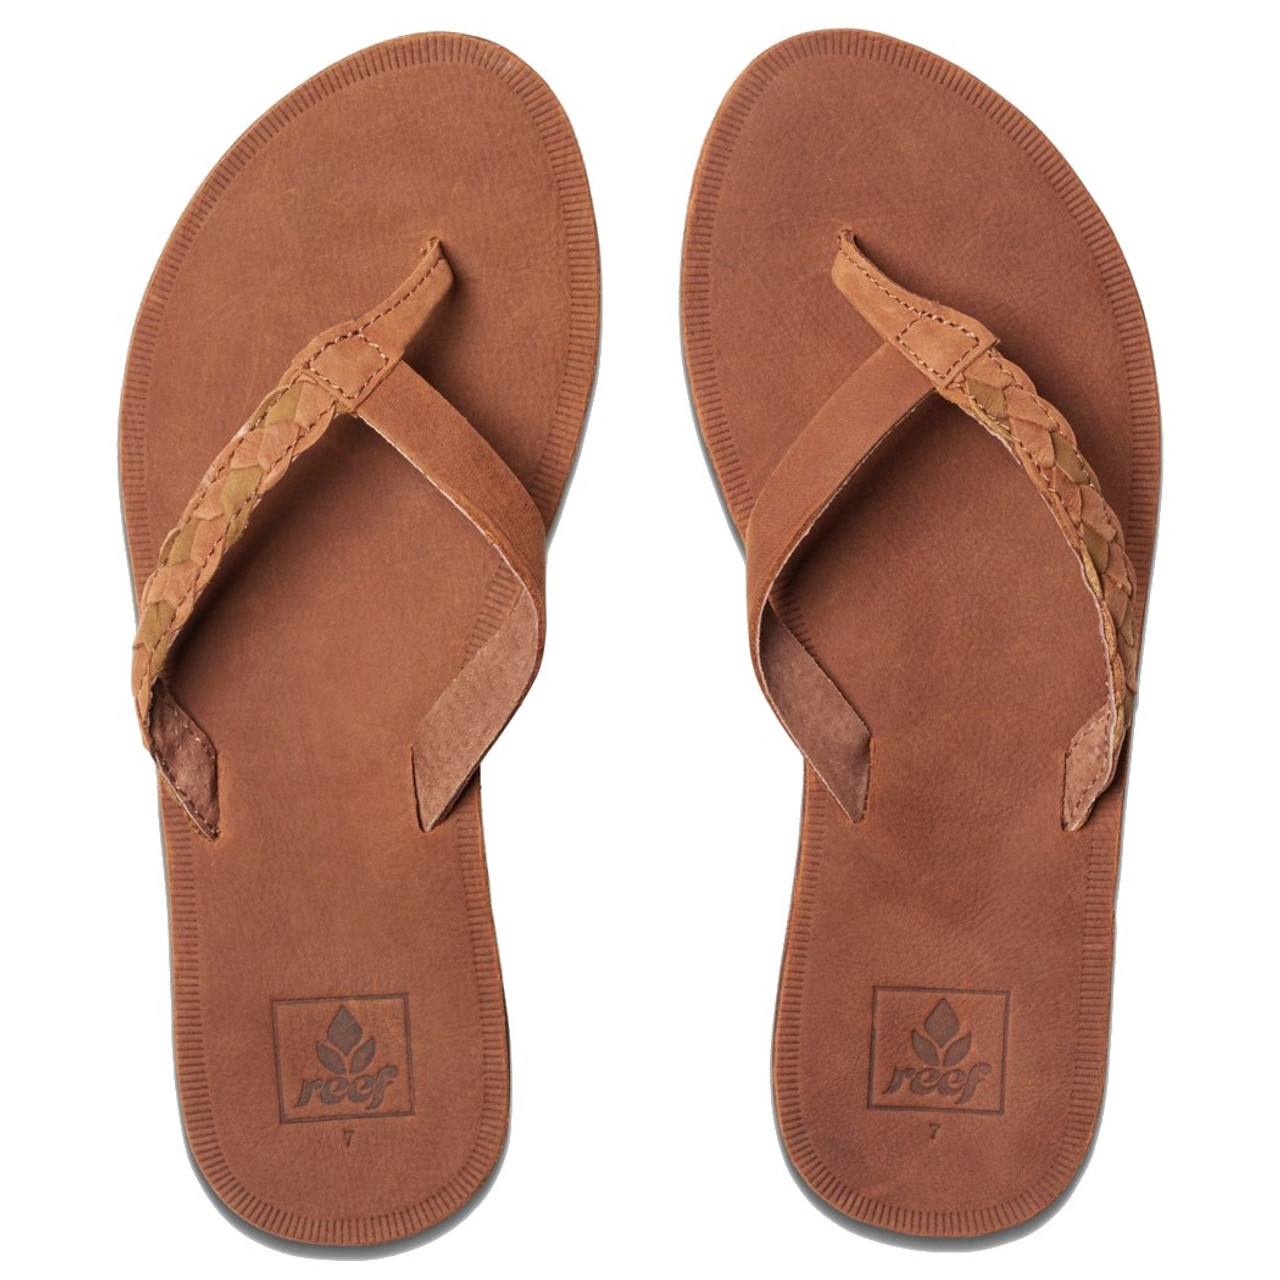 aa93a11f23eb Reef Women s Flip Flops - Voyage Sunset - Rust - Surf and Dirt